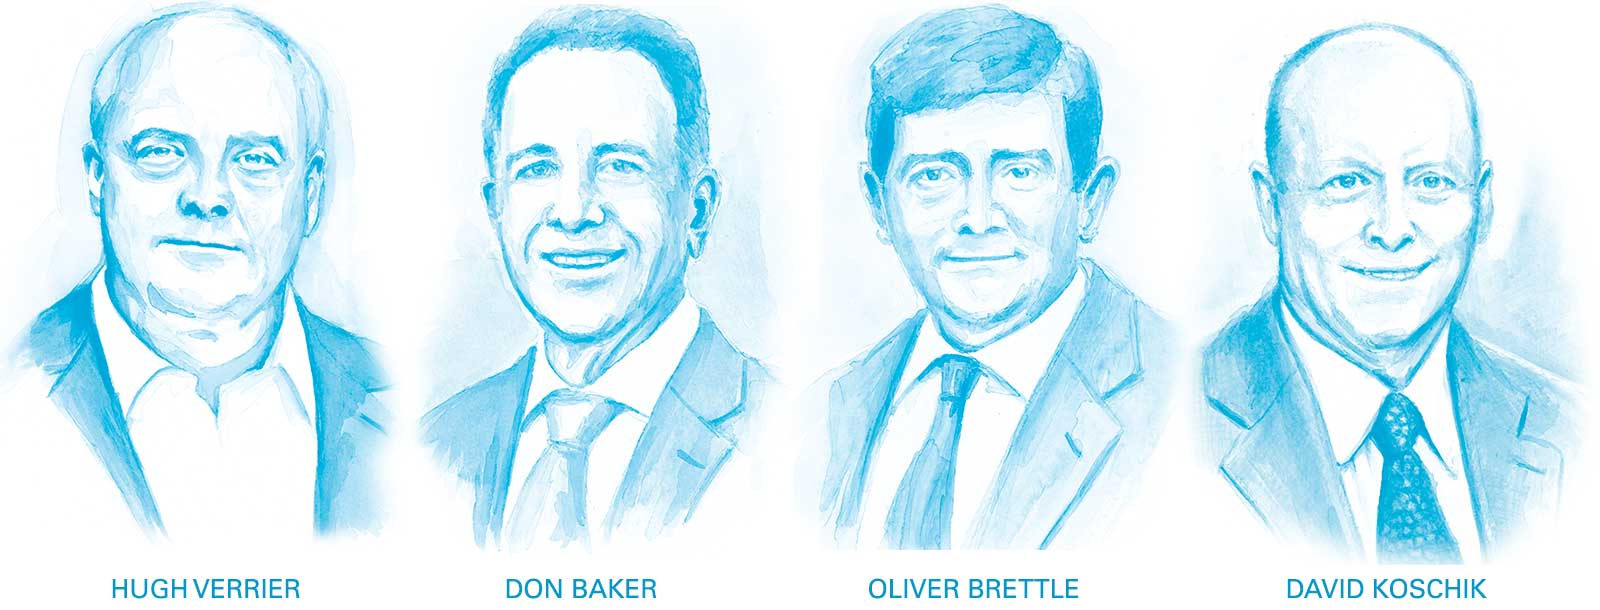 Portraits of the executive leadership